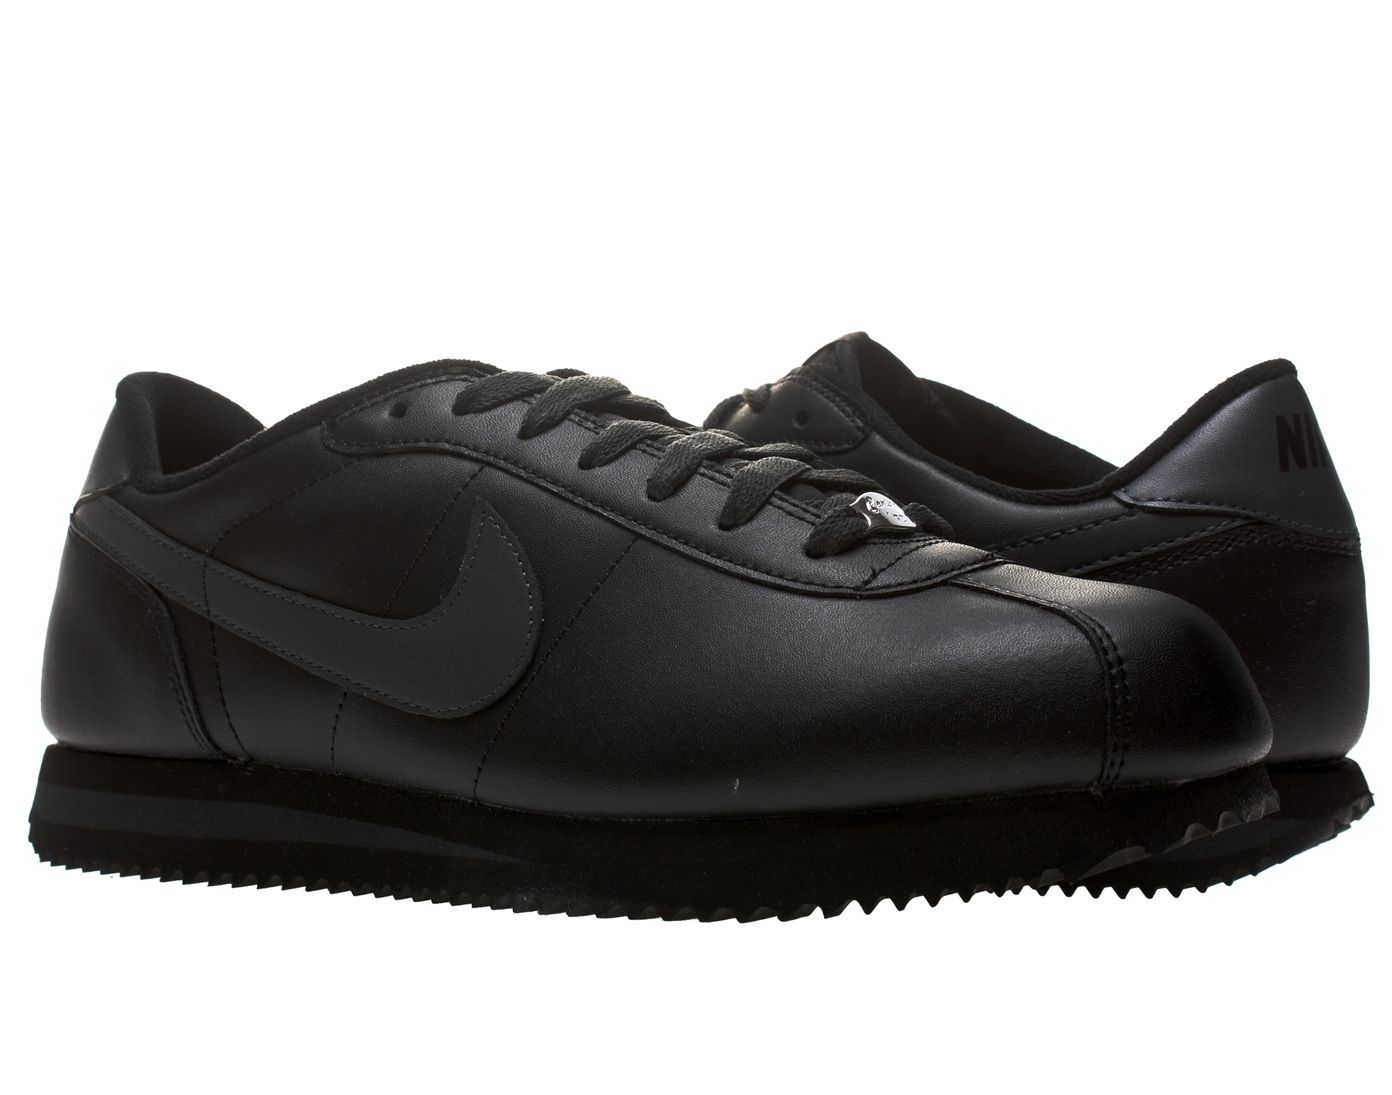 huge selection of 43a99 c2aa5 Pin by Jessica Bennington on Shoes! | Nike cortez, Nike ...